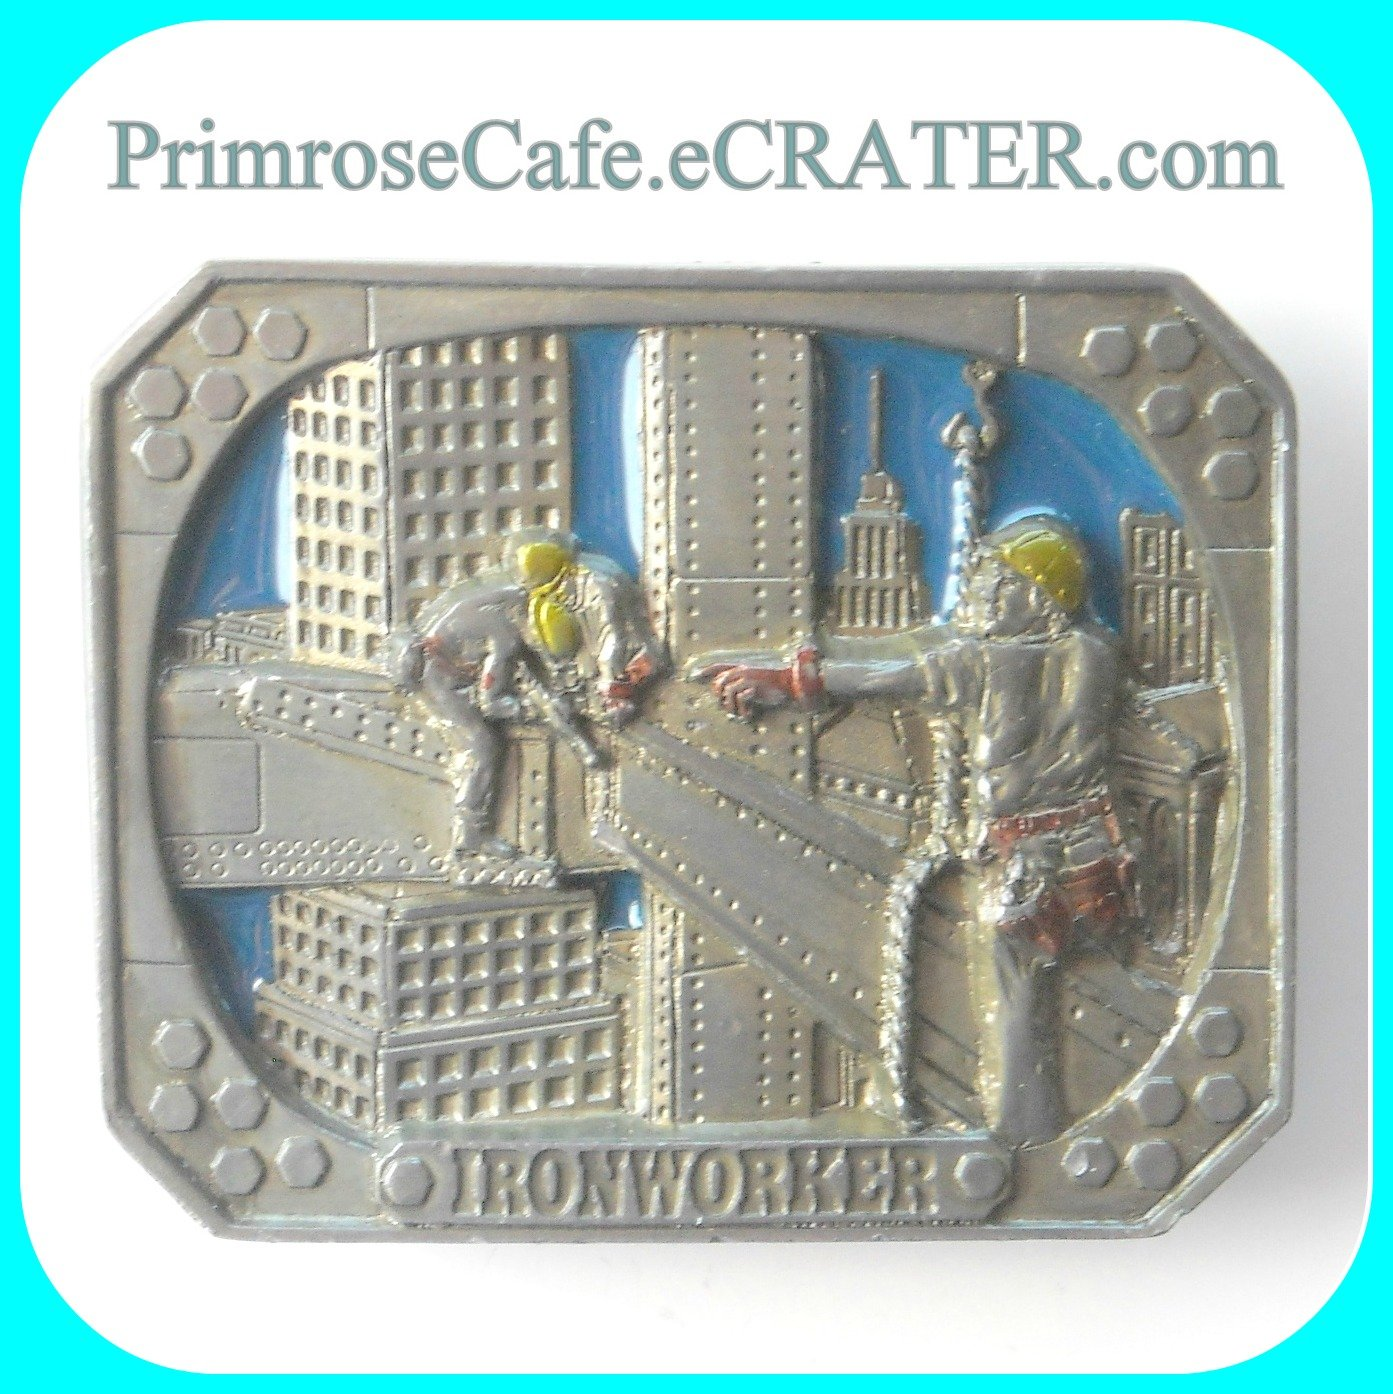 Ironworker  Cowboys of the skies C+J 1990 C&J Inc pewter alloy belt buckle